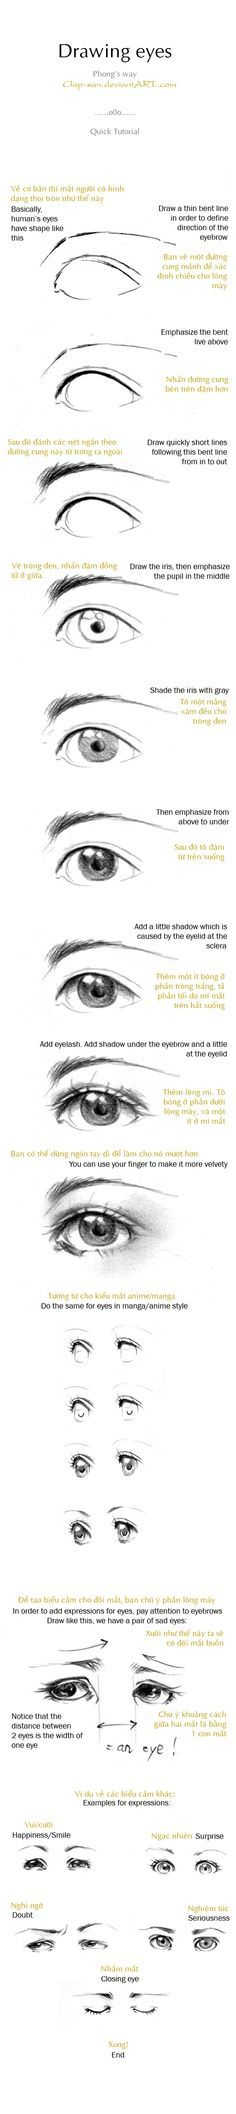 How to draw realistic eyes step by step